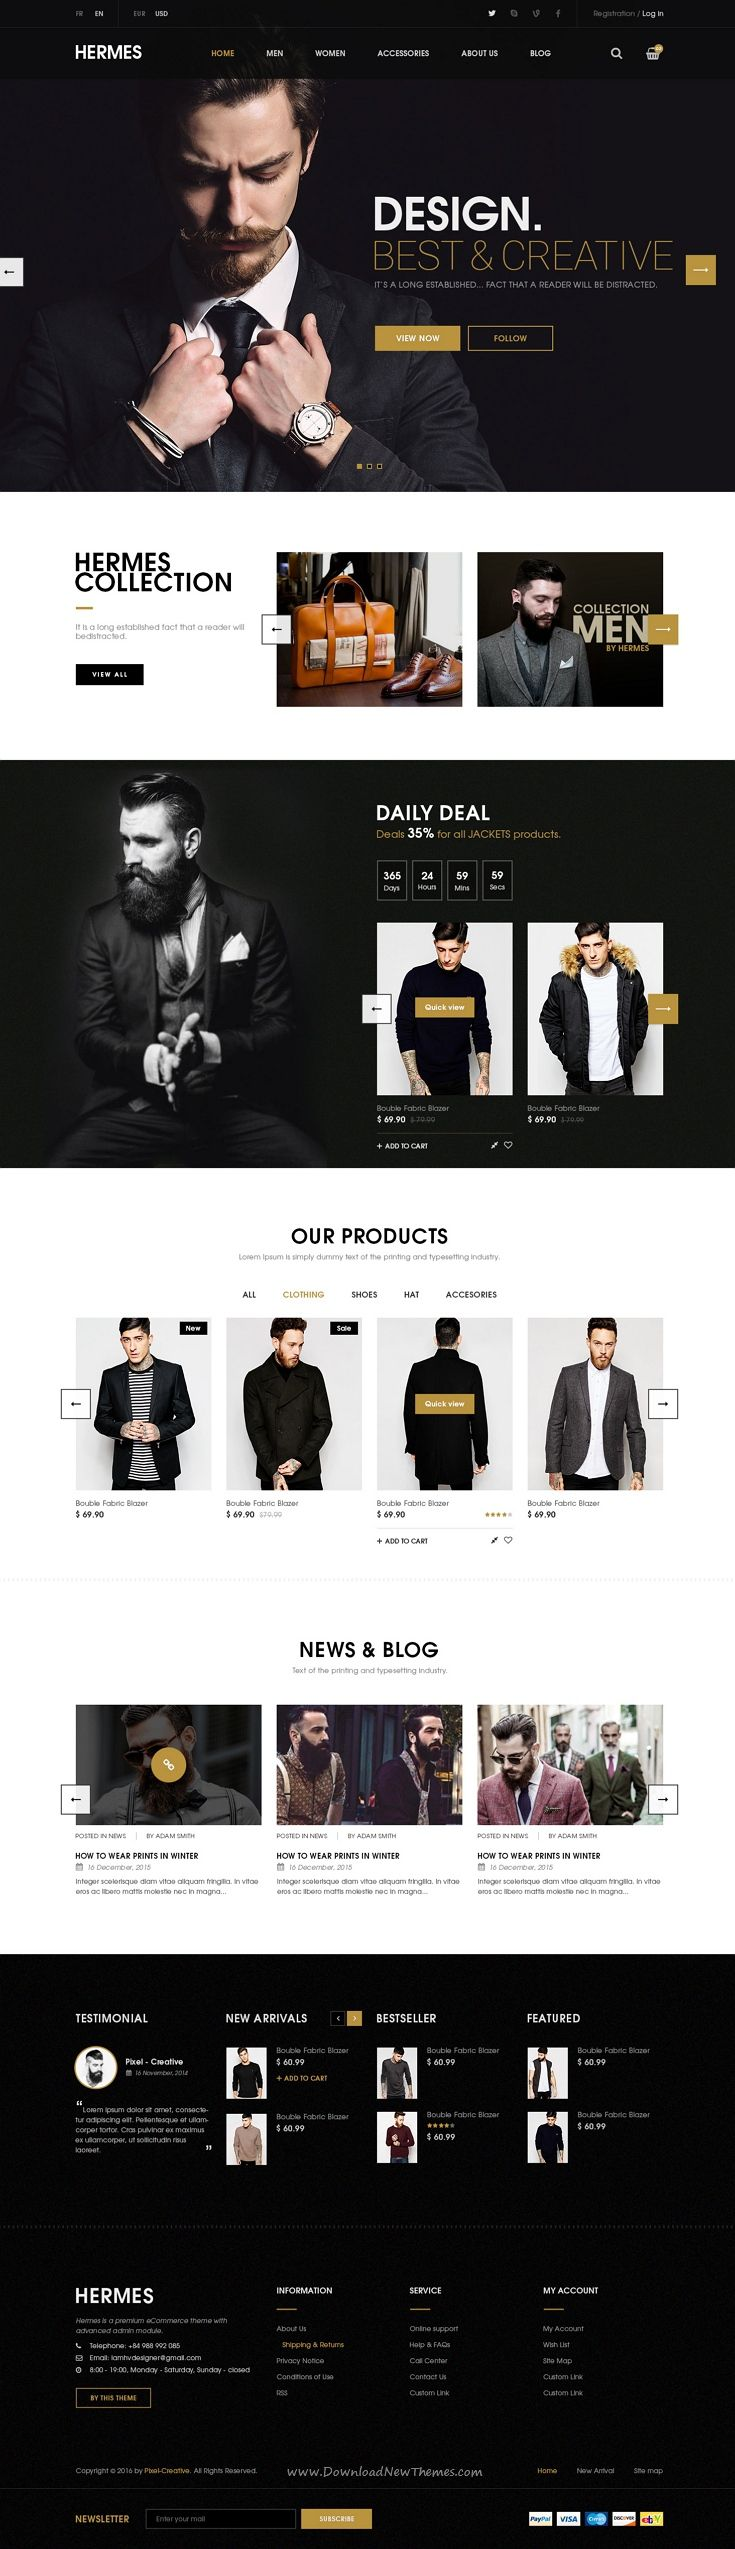 Hermes Ecommerce PSD Template is an #eCommerce #website template designed in #Photoshop with a modern look. It comes in 7 stunning homepage layouts and well organized 32 PSD files.